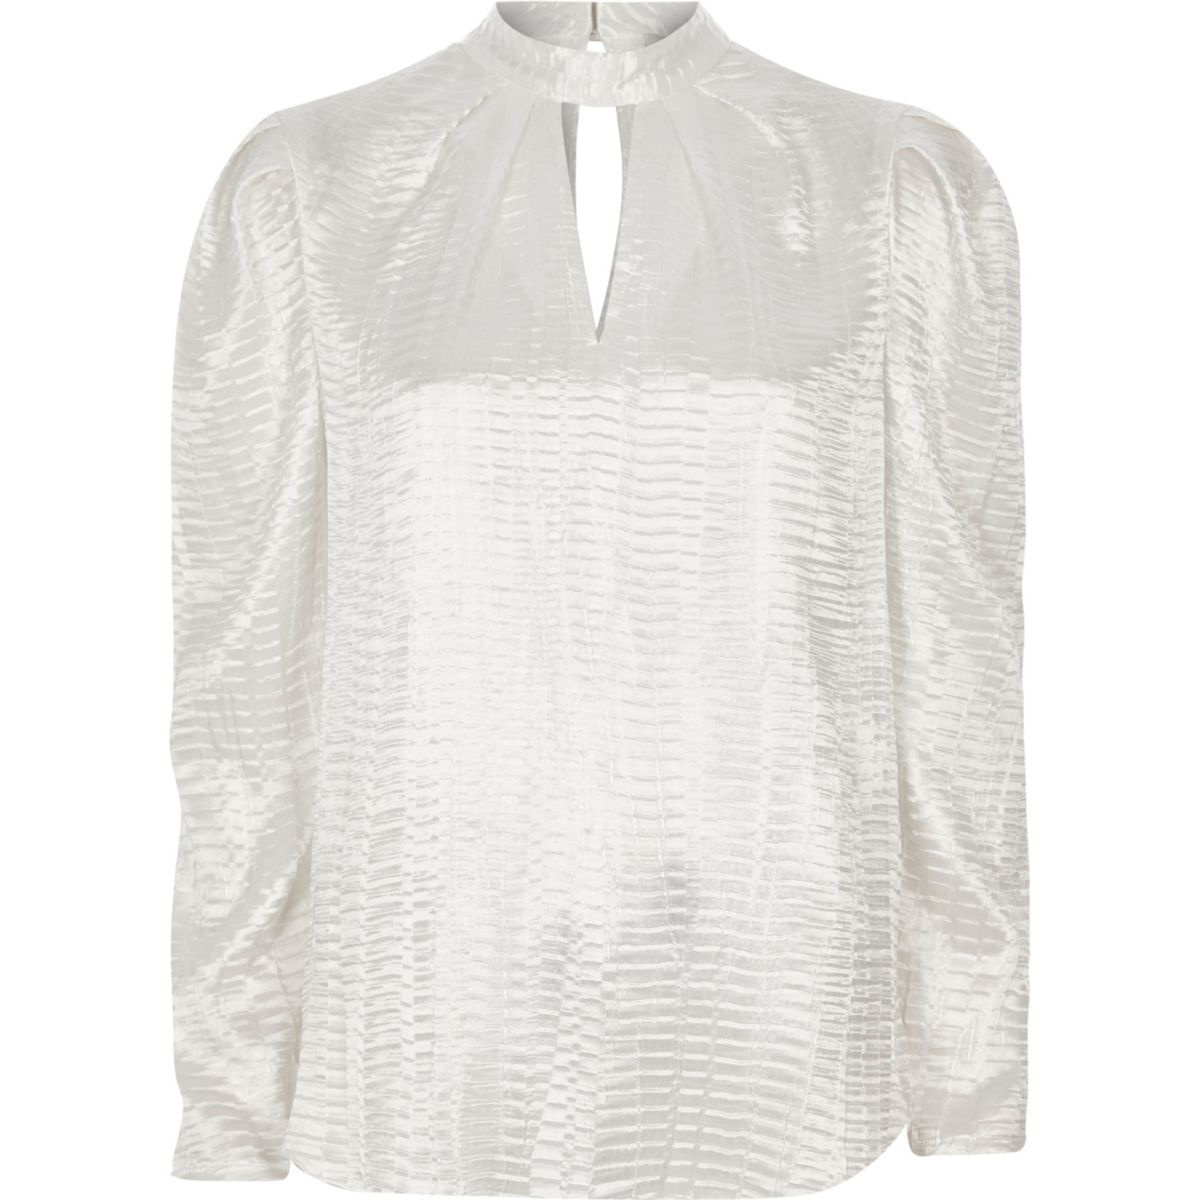 White textured satin puff sleeve top